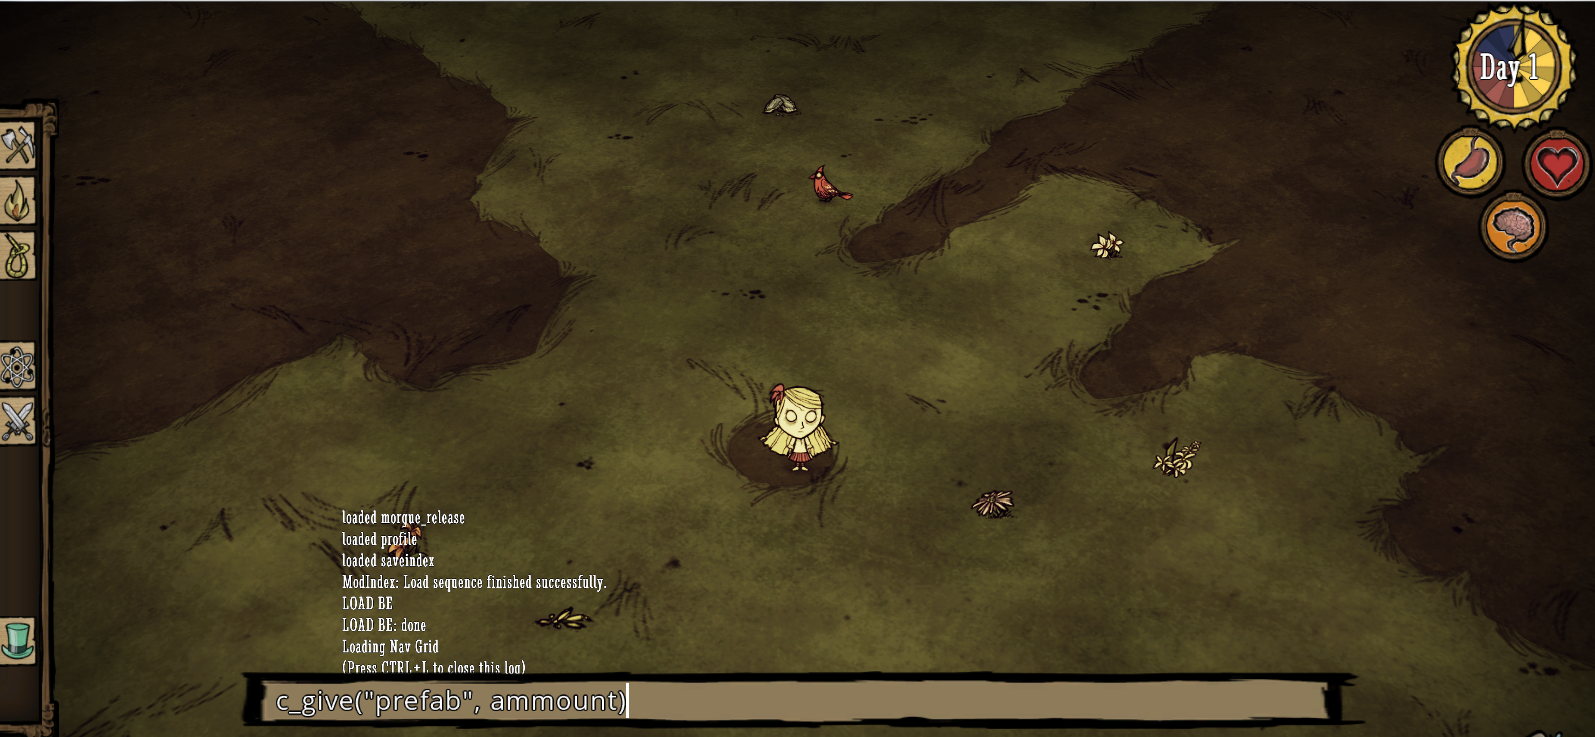 Don t starve cheat codes